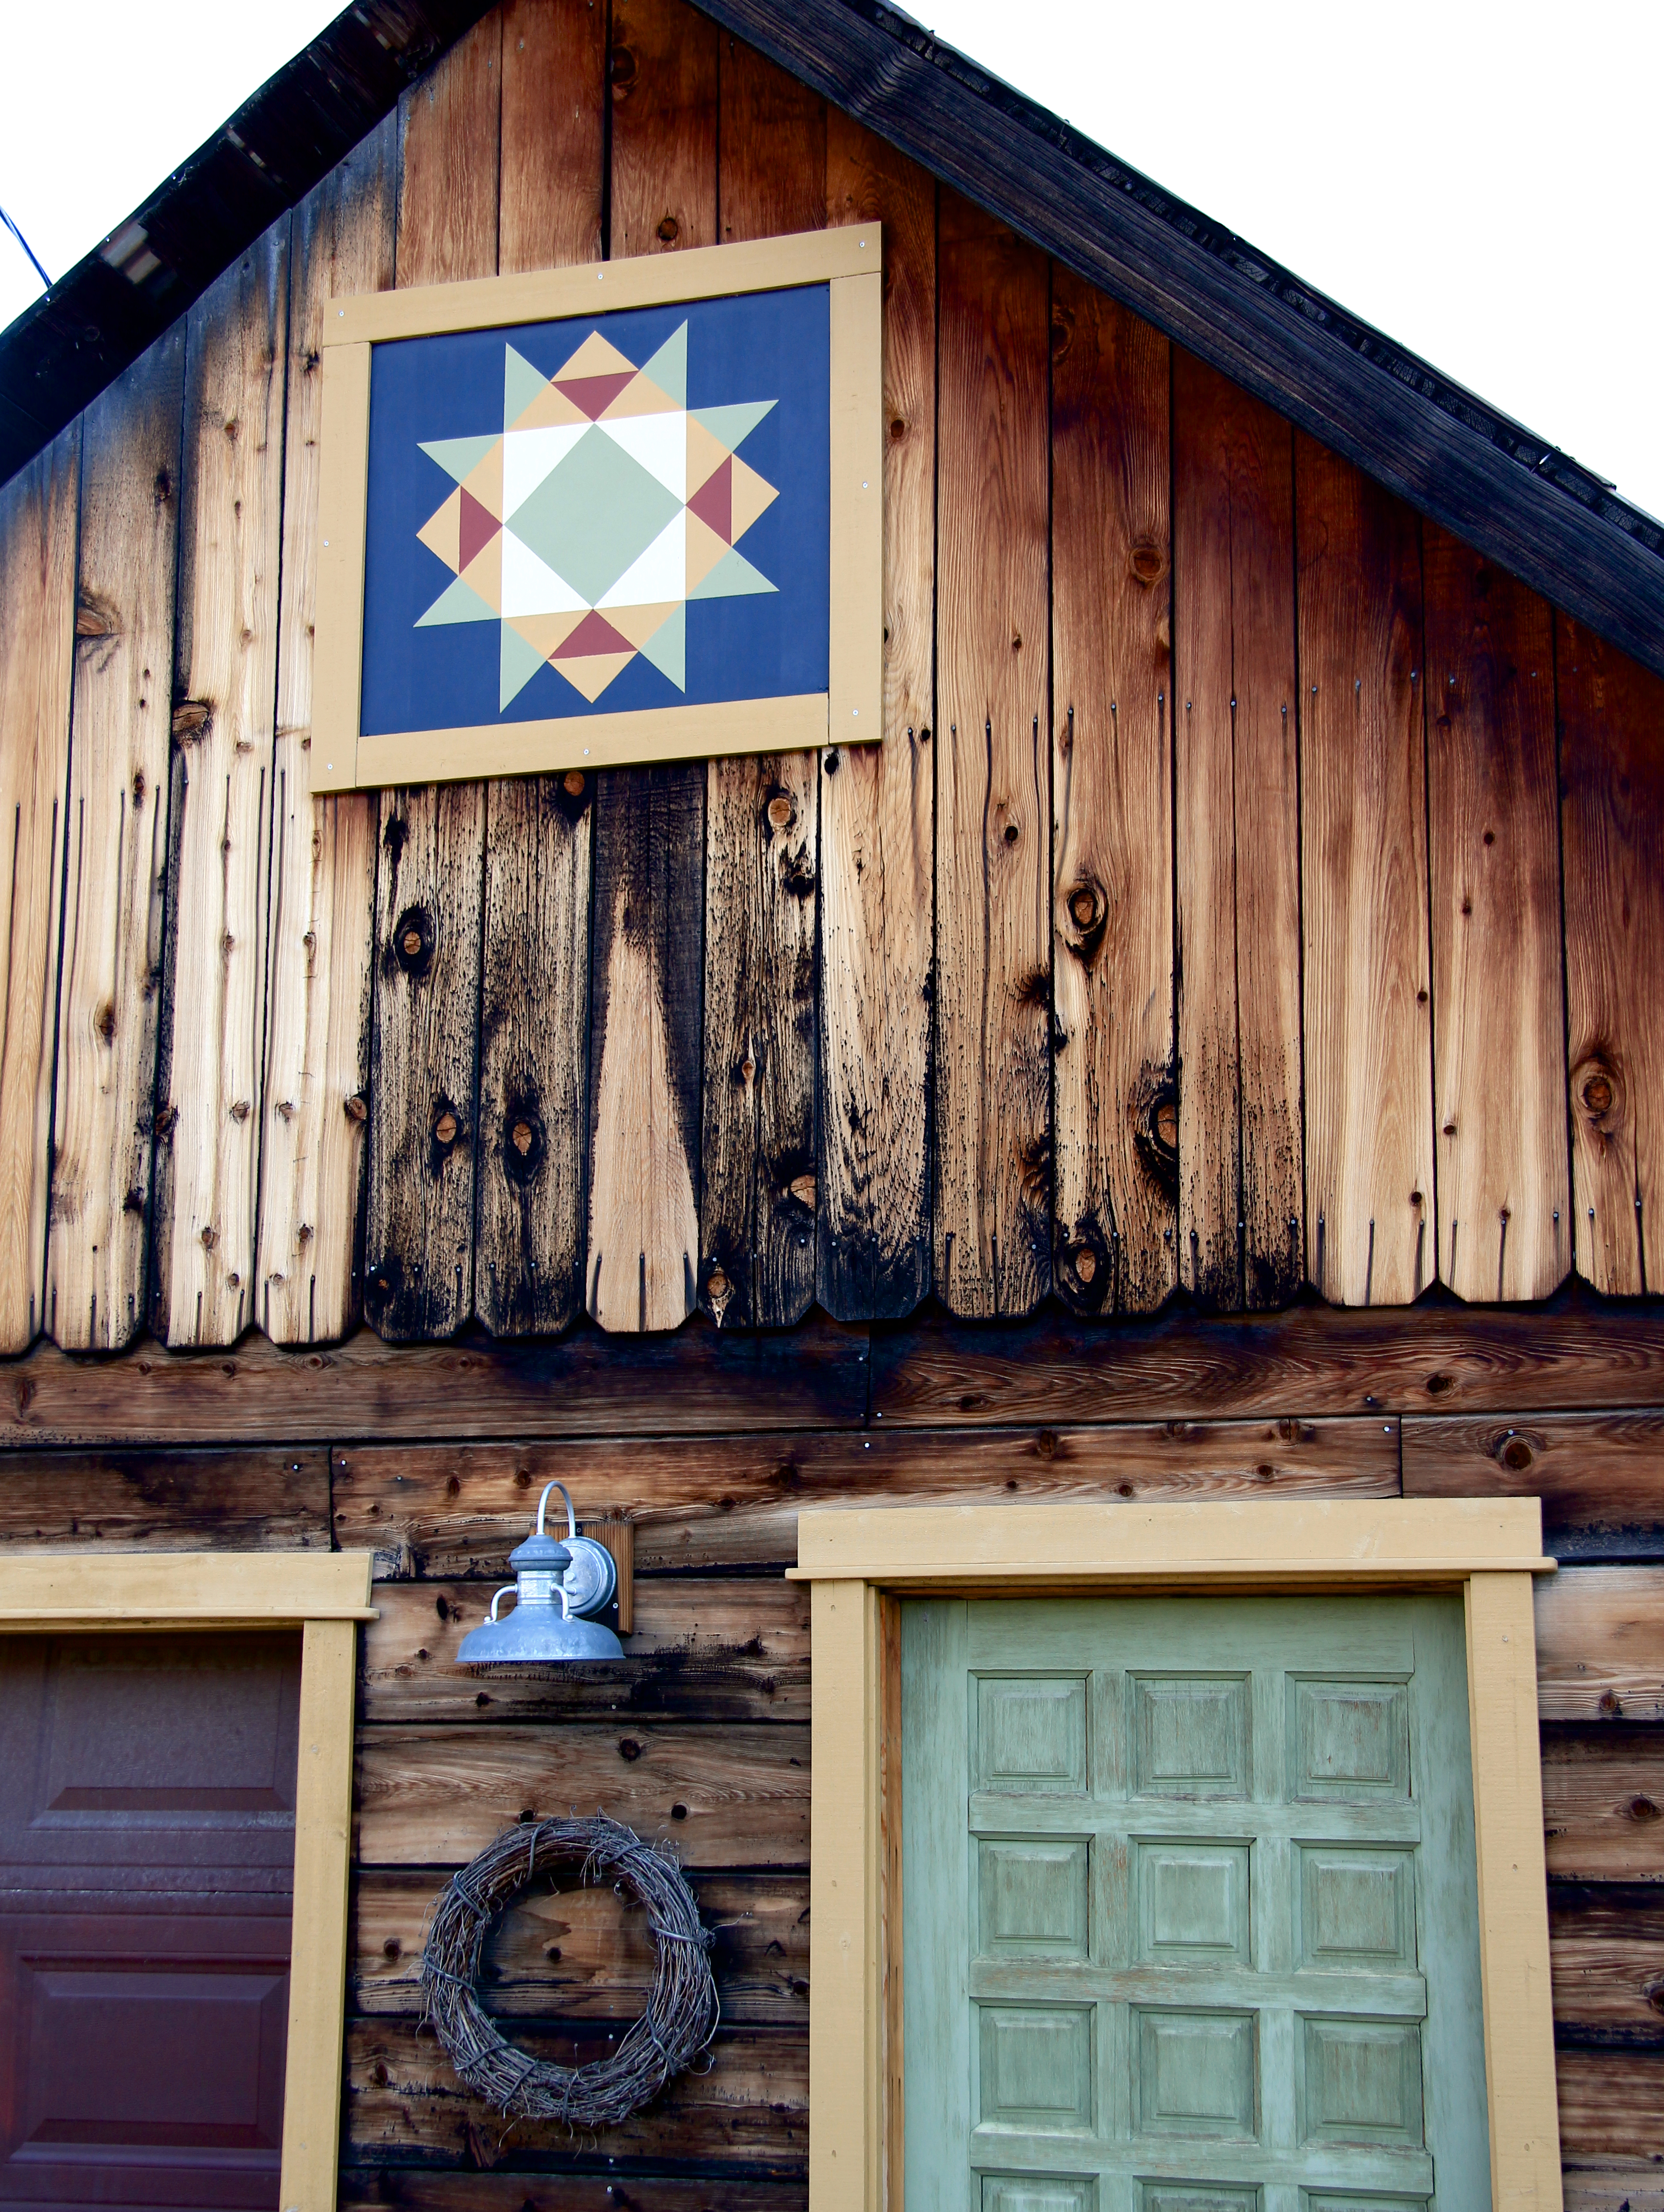 Quincy A Town Of Timber Neighborliness And Barn Quilt A Cooks